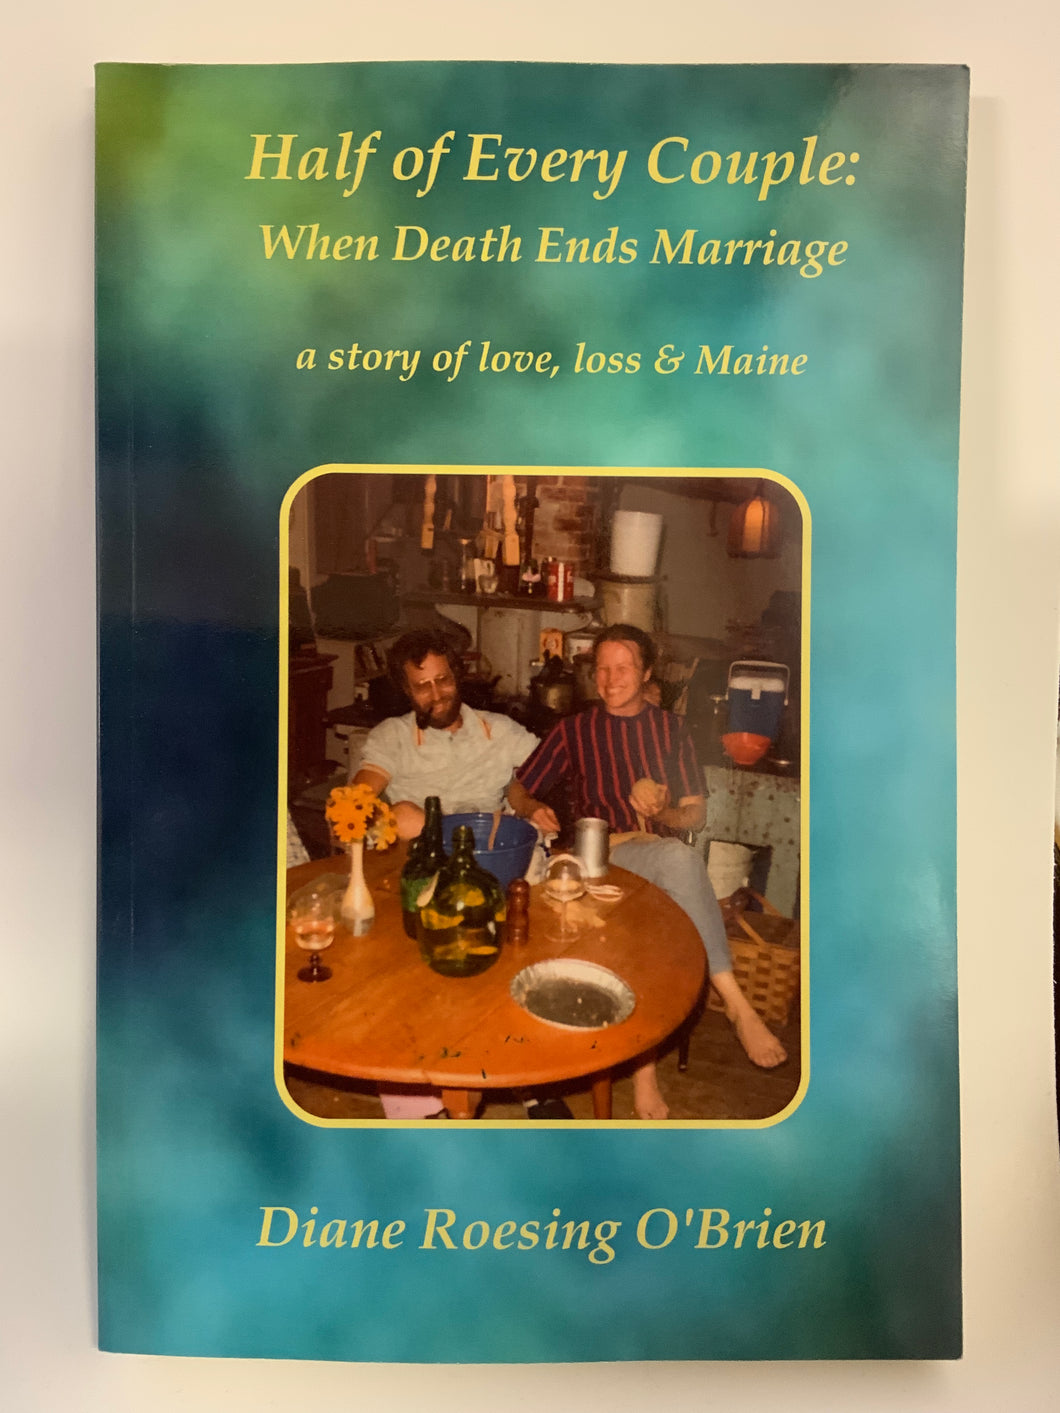 Half of Every Couple: When Death Ends Marriage